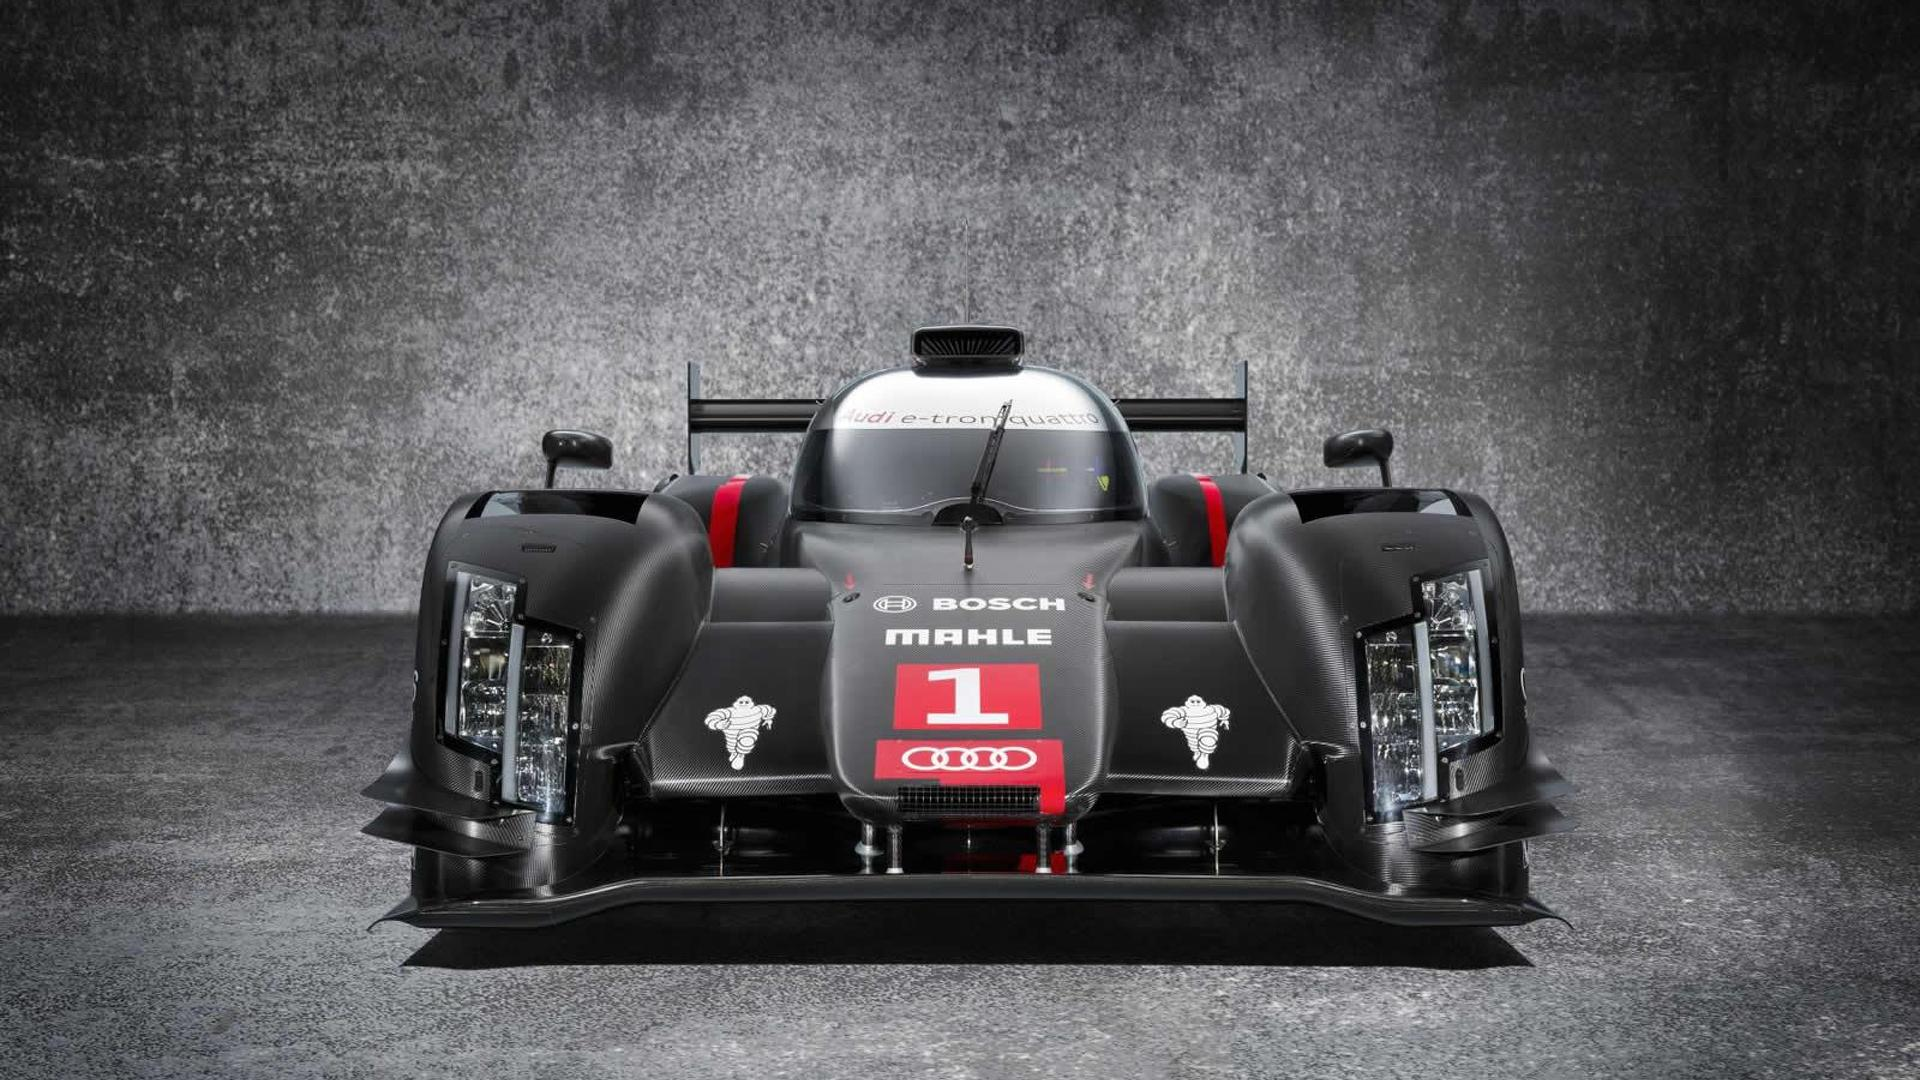 2014 Audi R18 e-tron quattro previewed, testing starts in Sebring